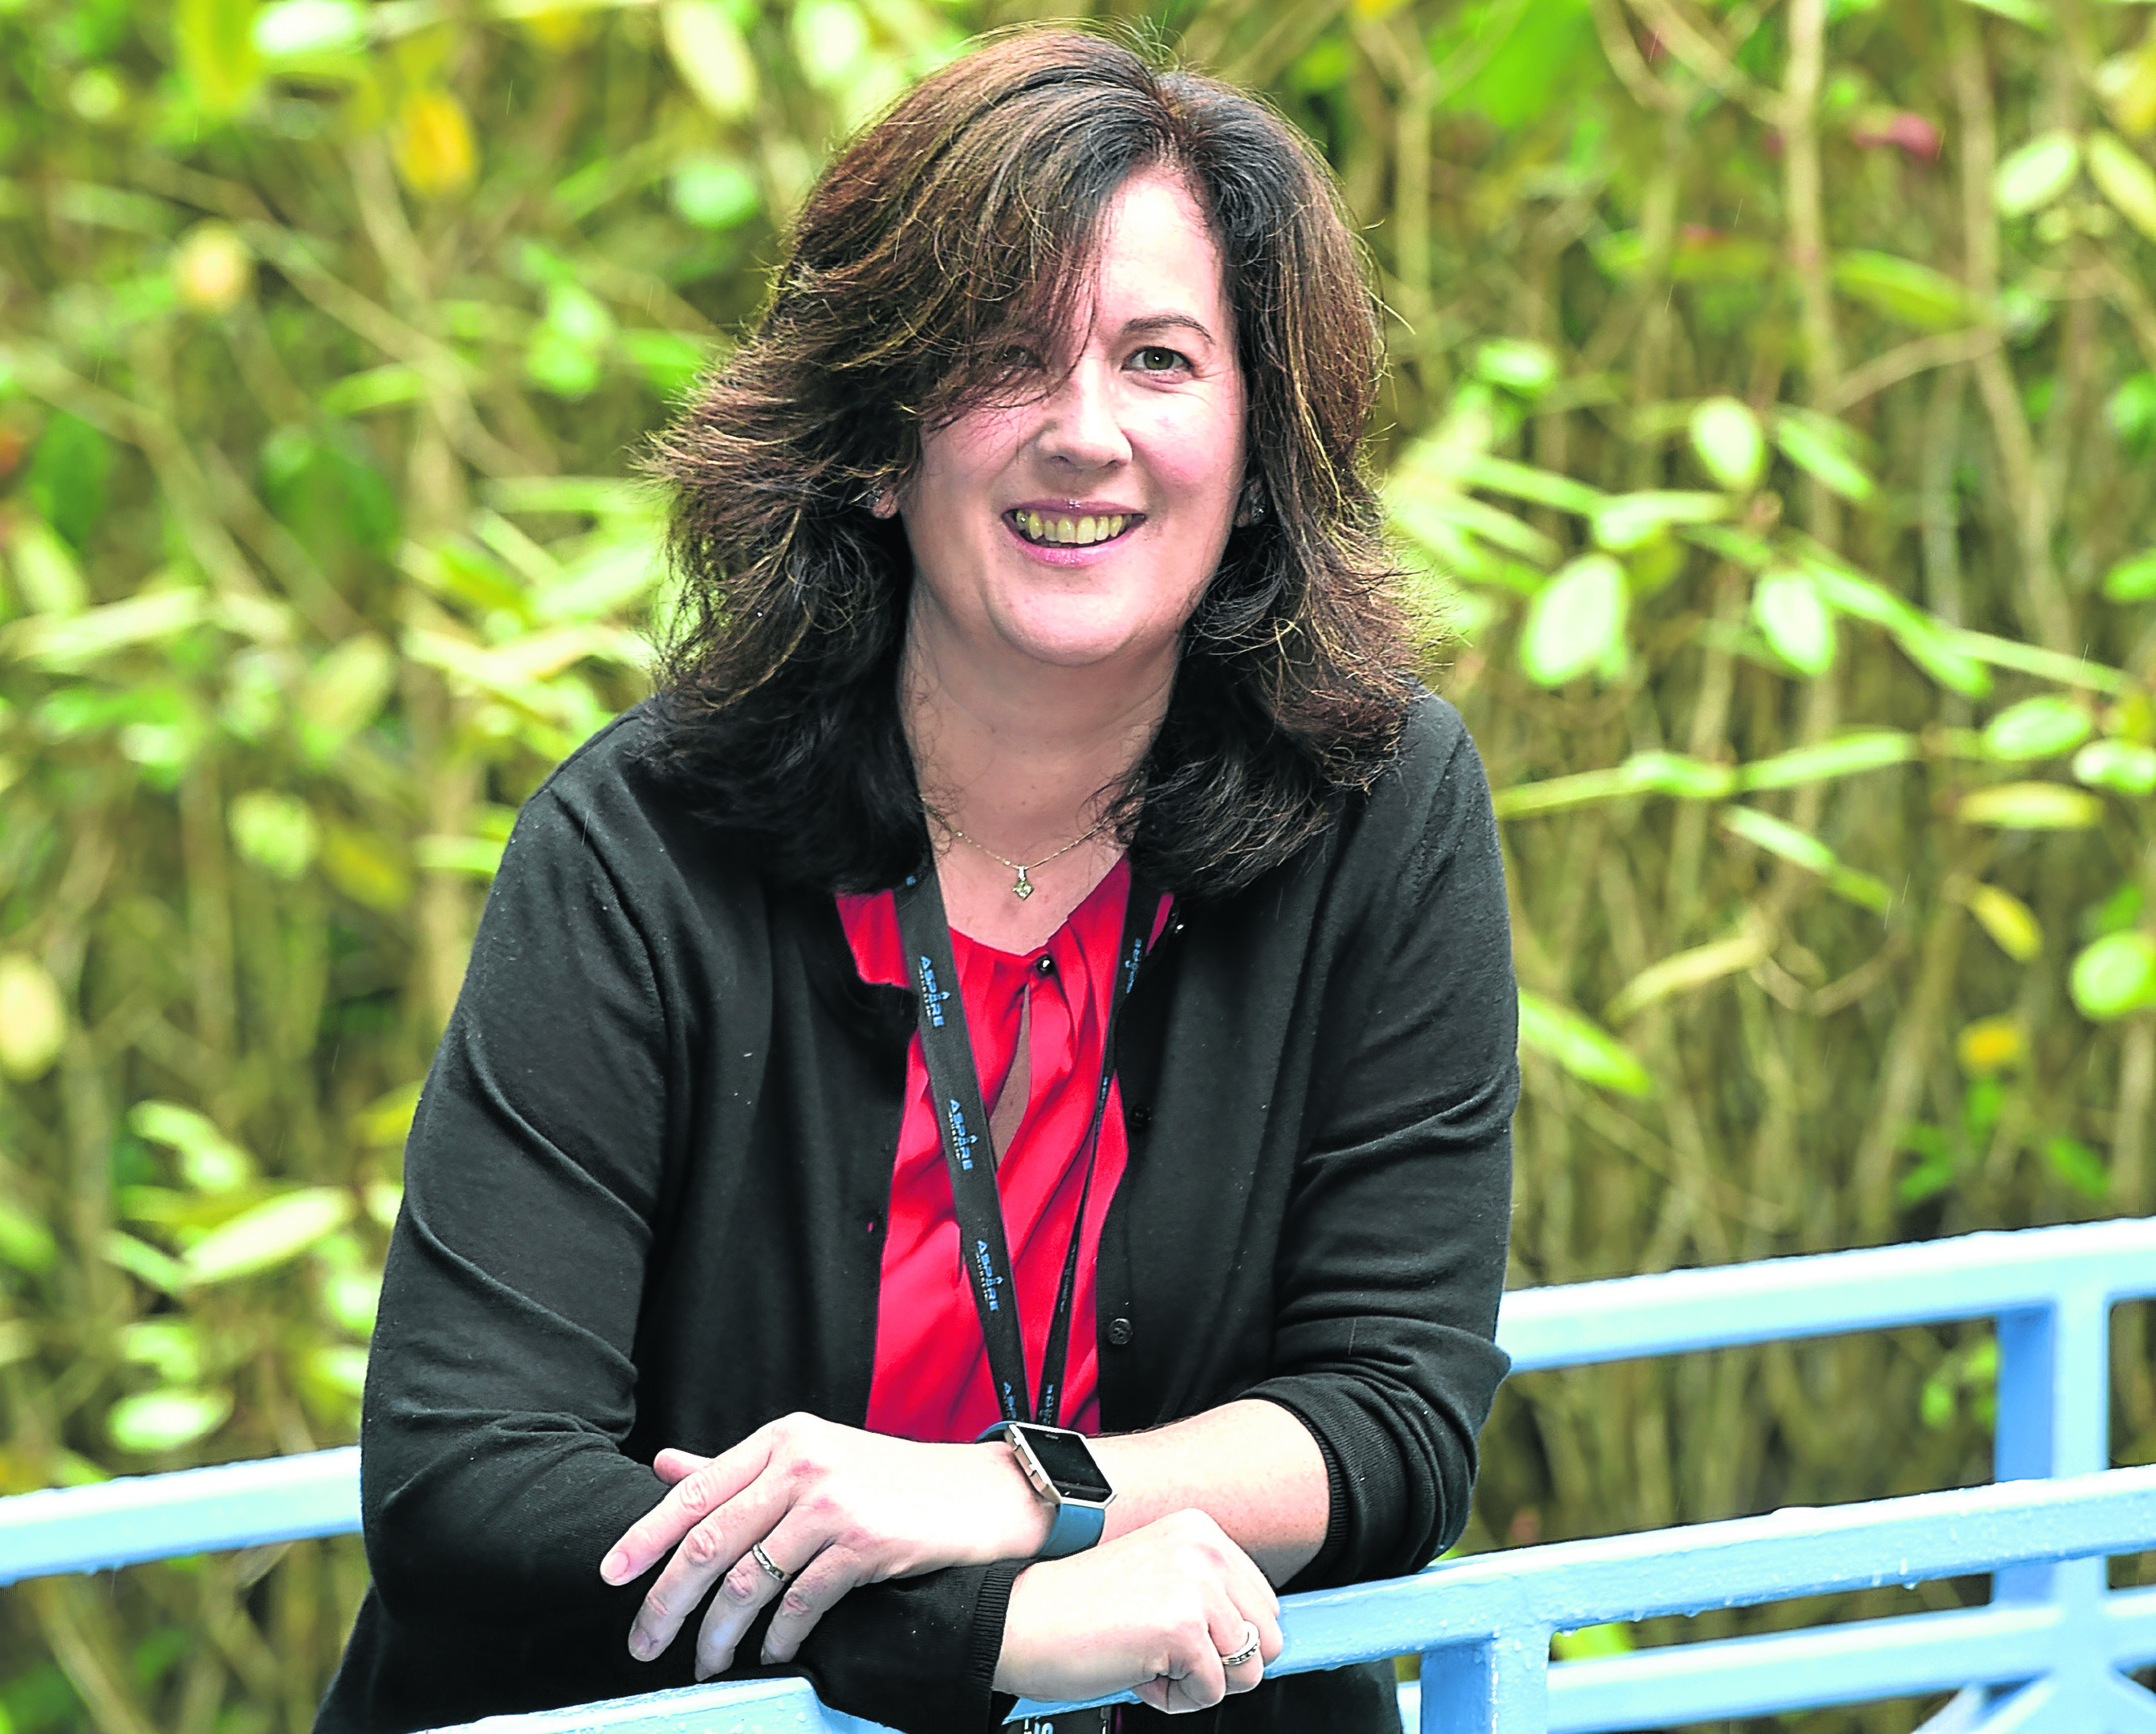 Victoria Munro has worked in the the oil and gas sector for 17 years